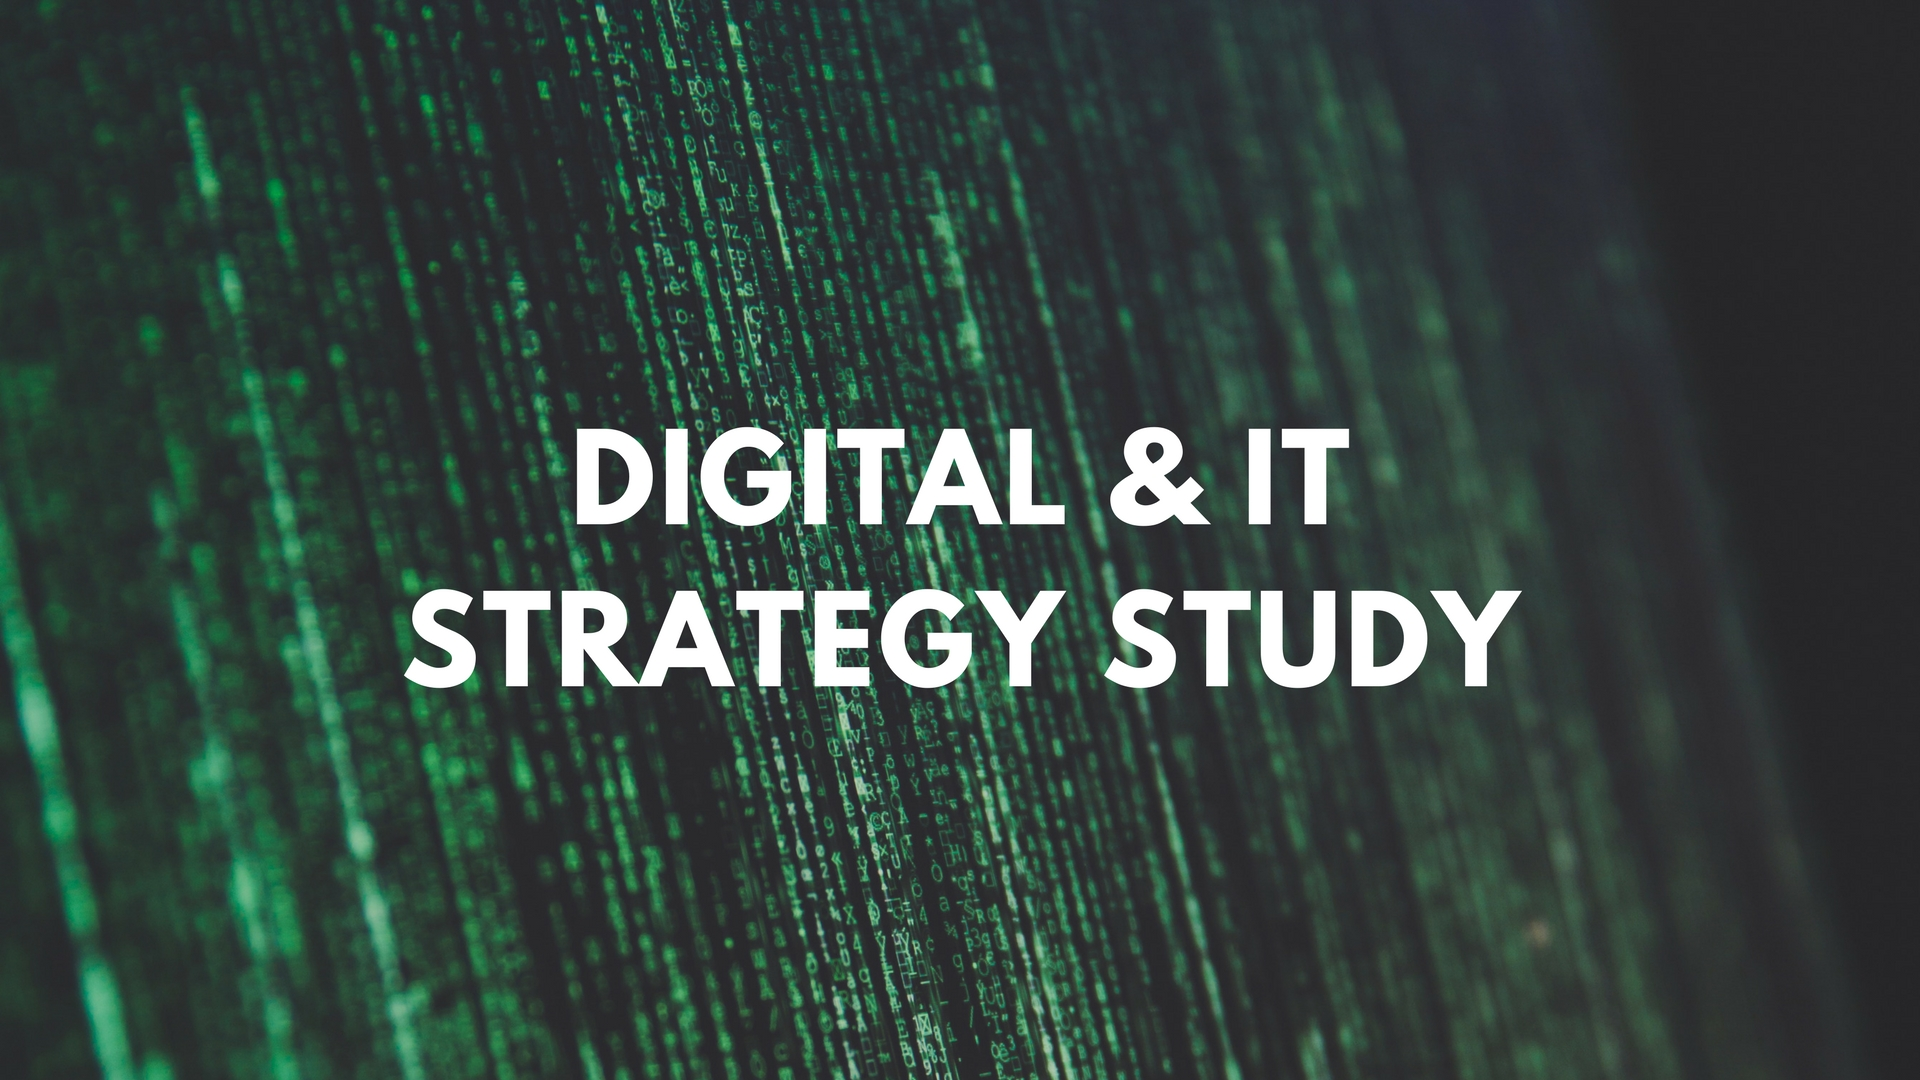 Poster for the Digital & IT Strategy Study program